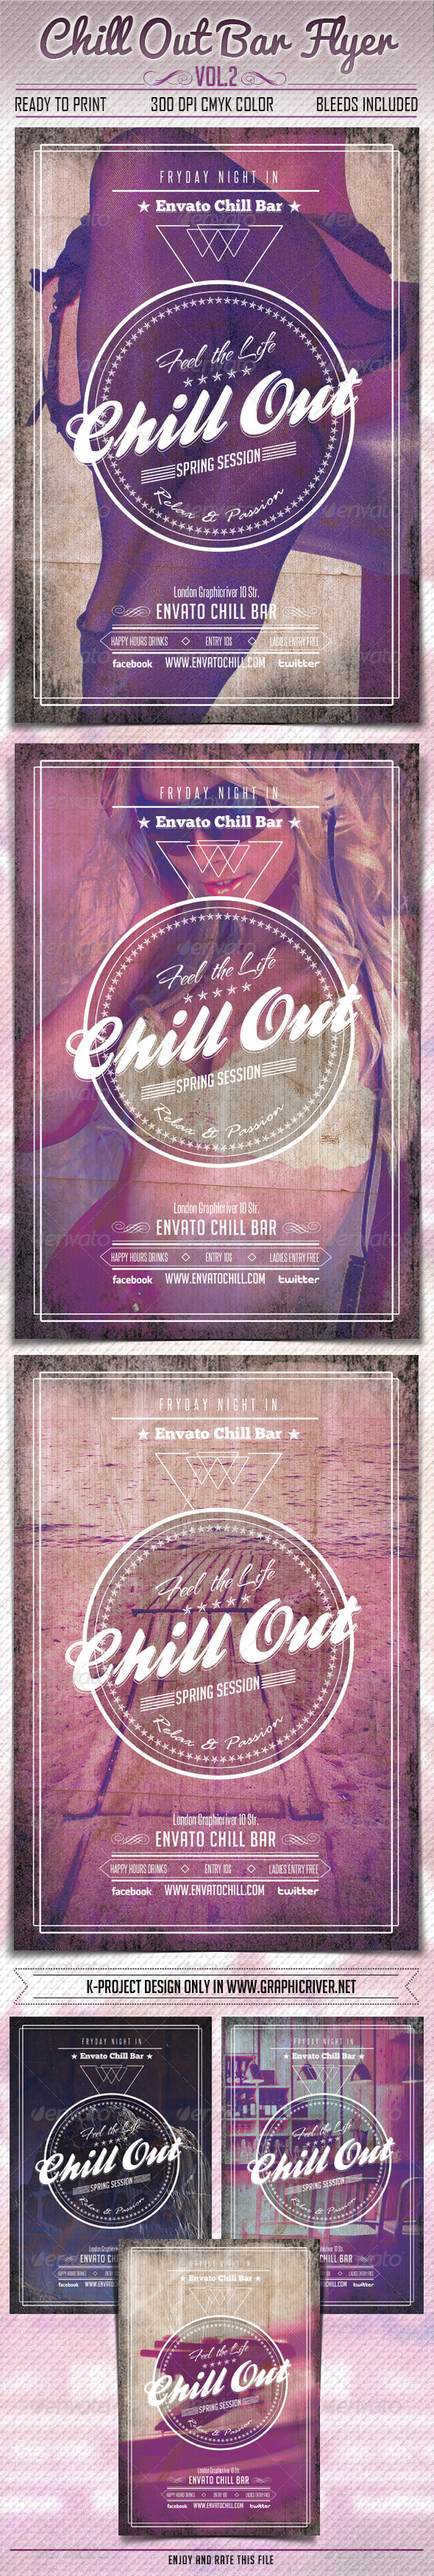 Chill Out Bar Flyer Vol2 - Clubs & Parties Events